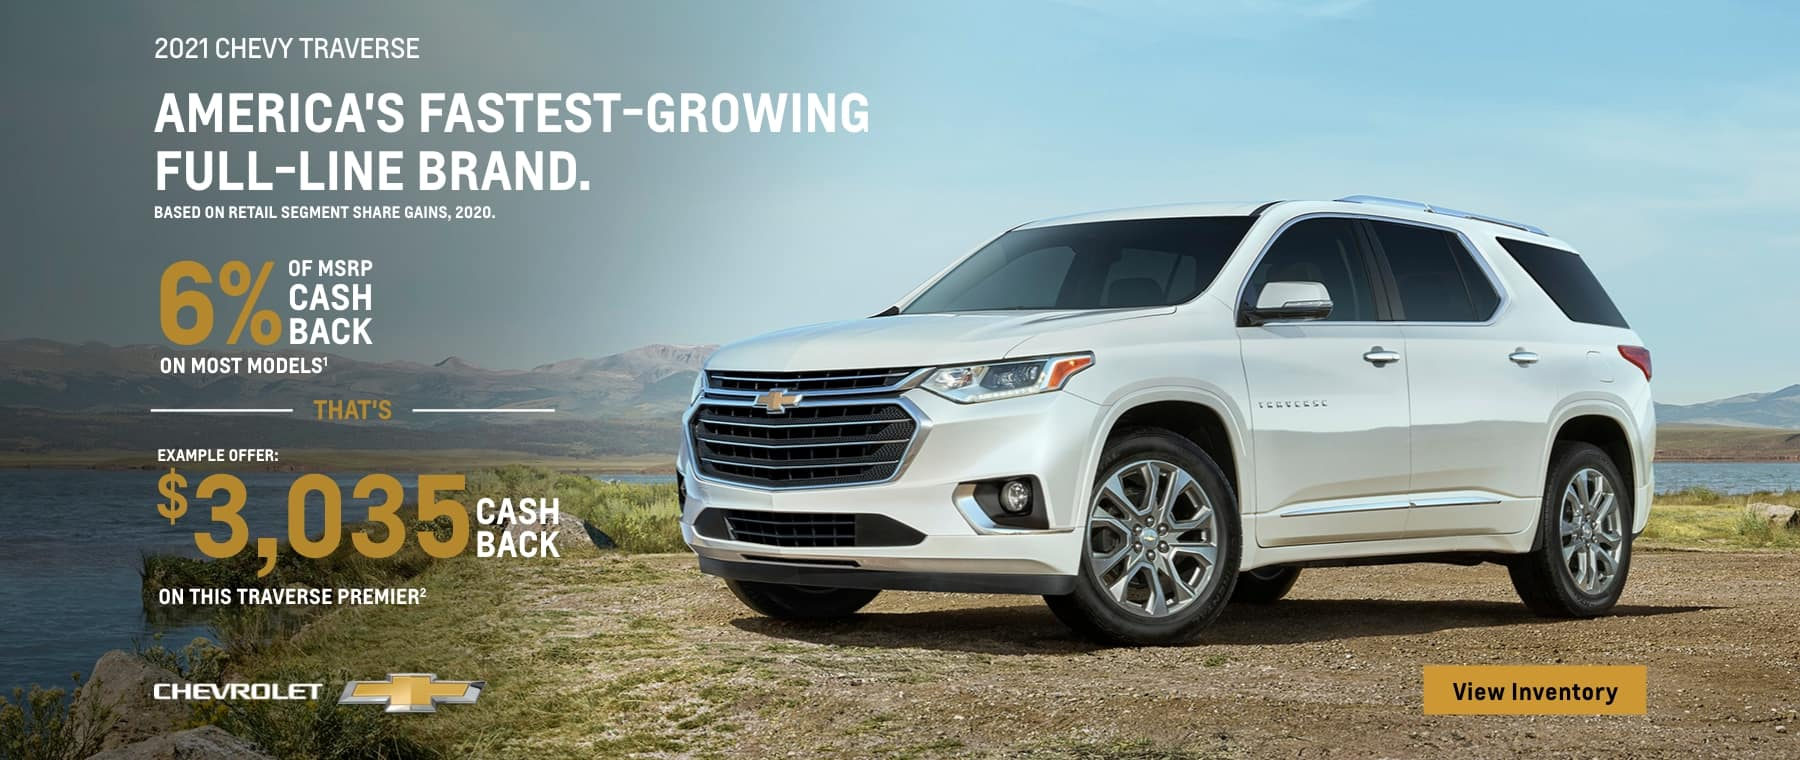 2021 chevy traverse example offer: | 6%. of msrp cash back that's $3,035: cash back chevrolet on most models on this traverse premier view inventory